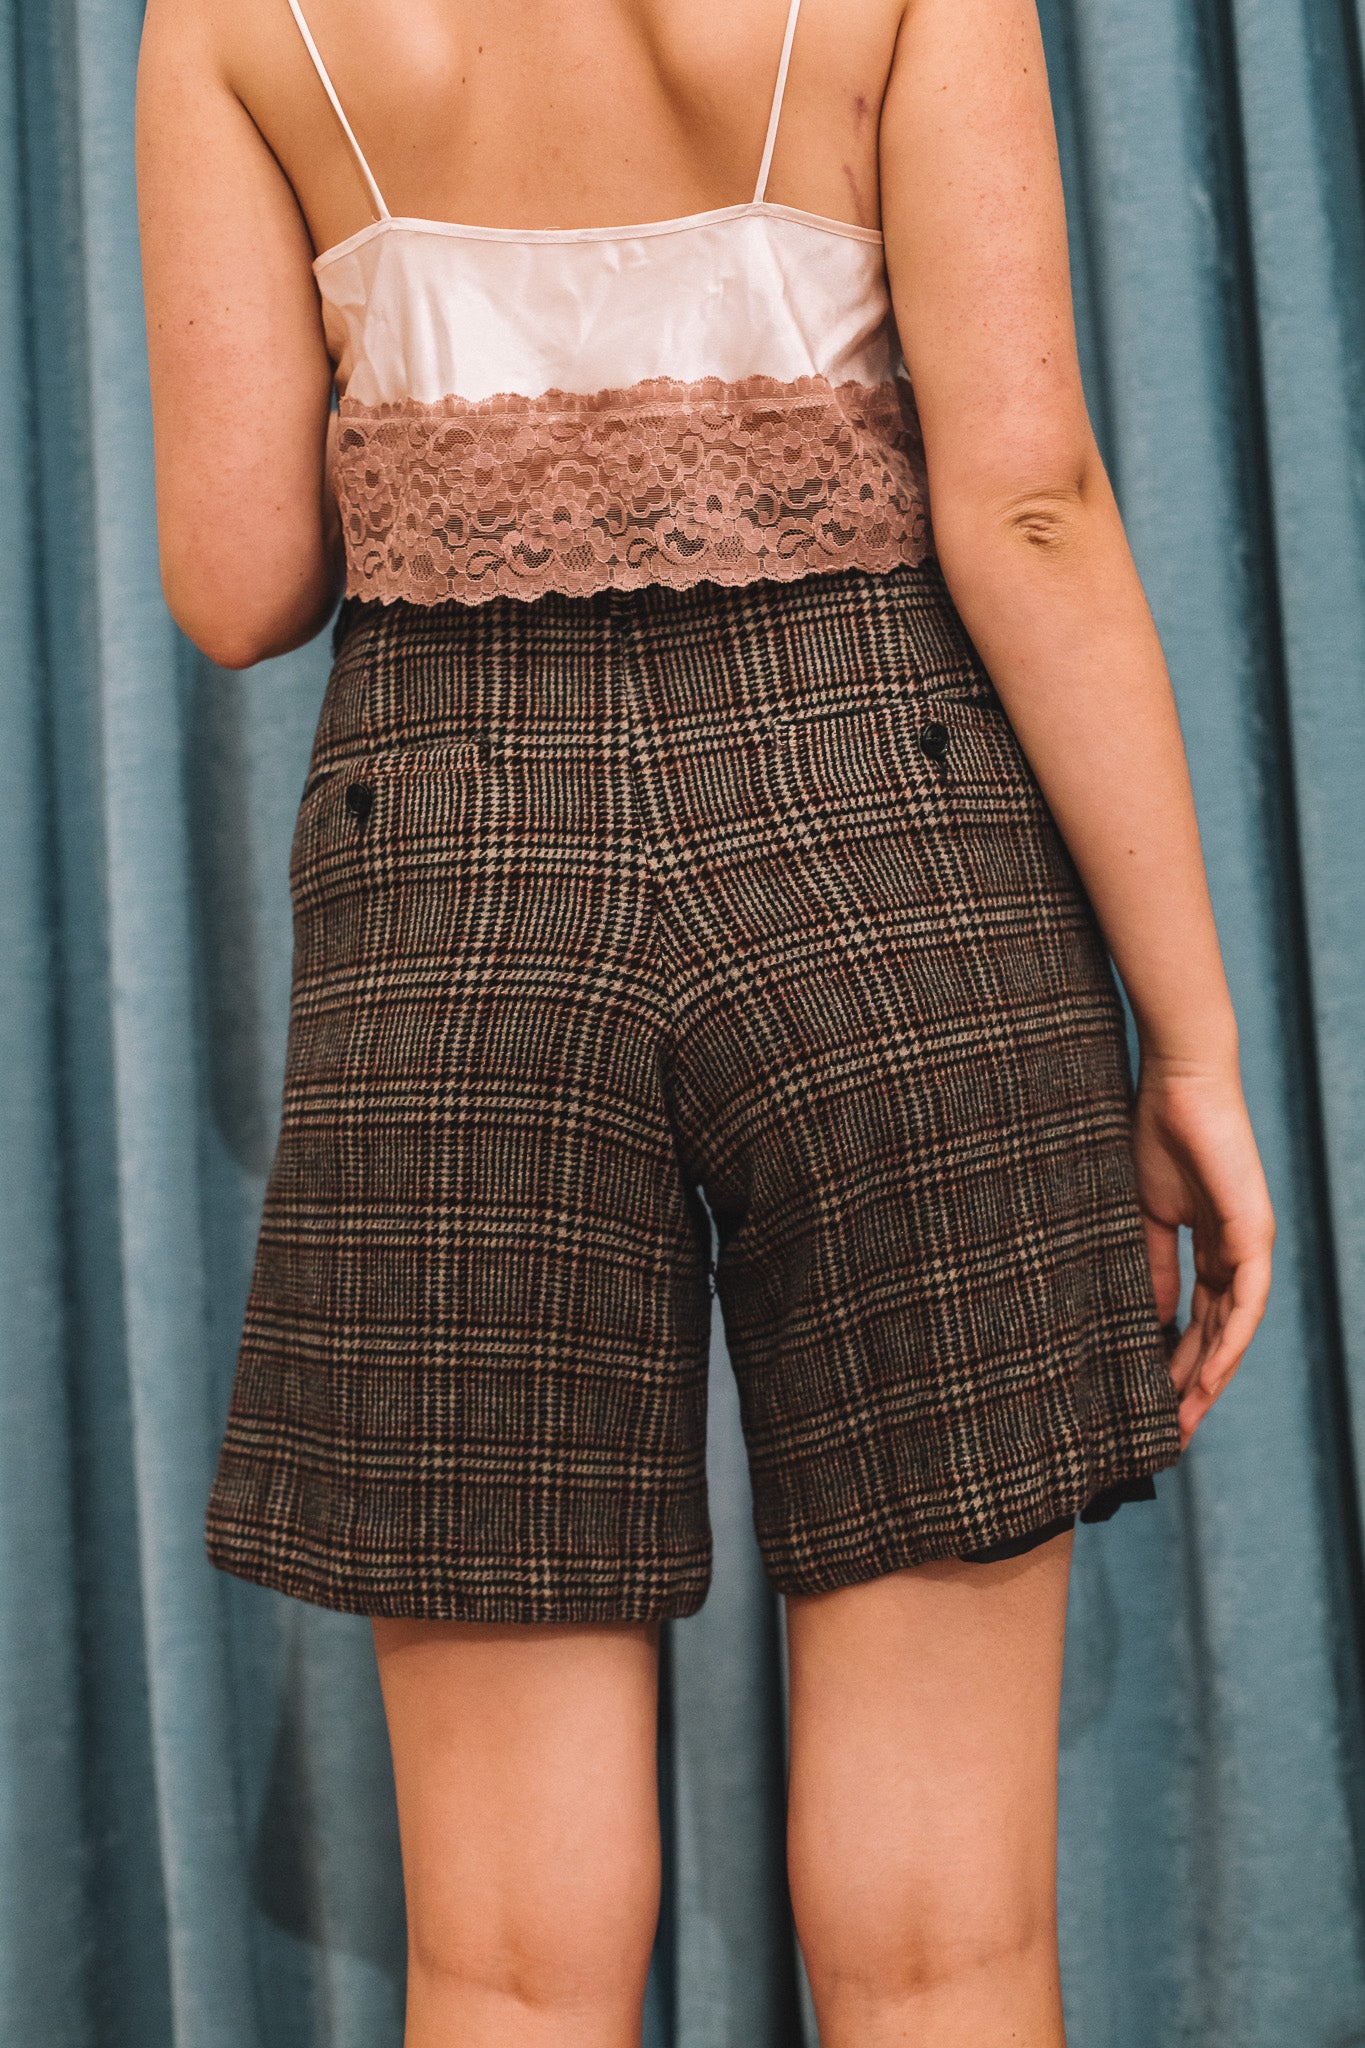 Burmese plaid shorts